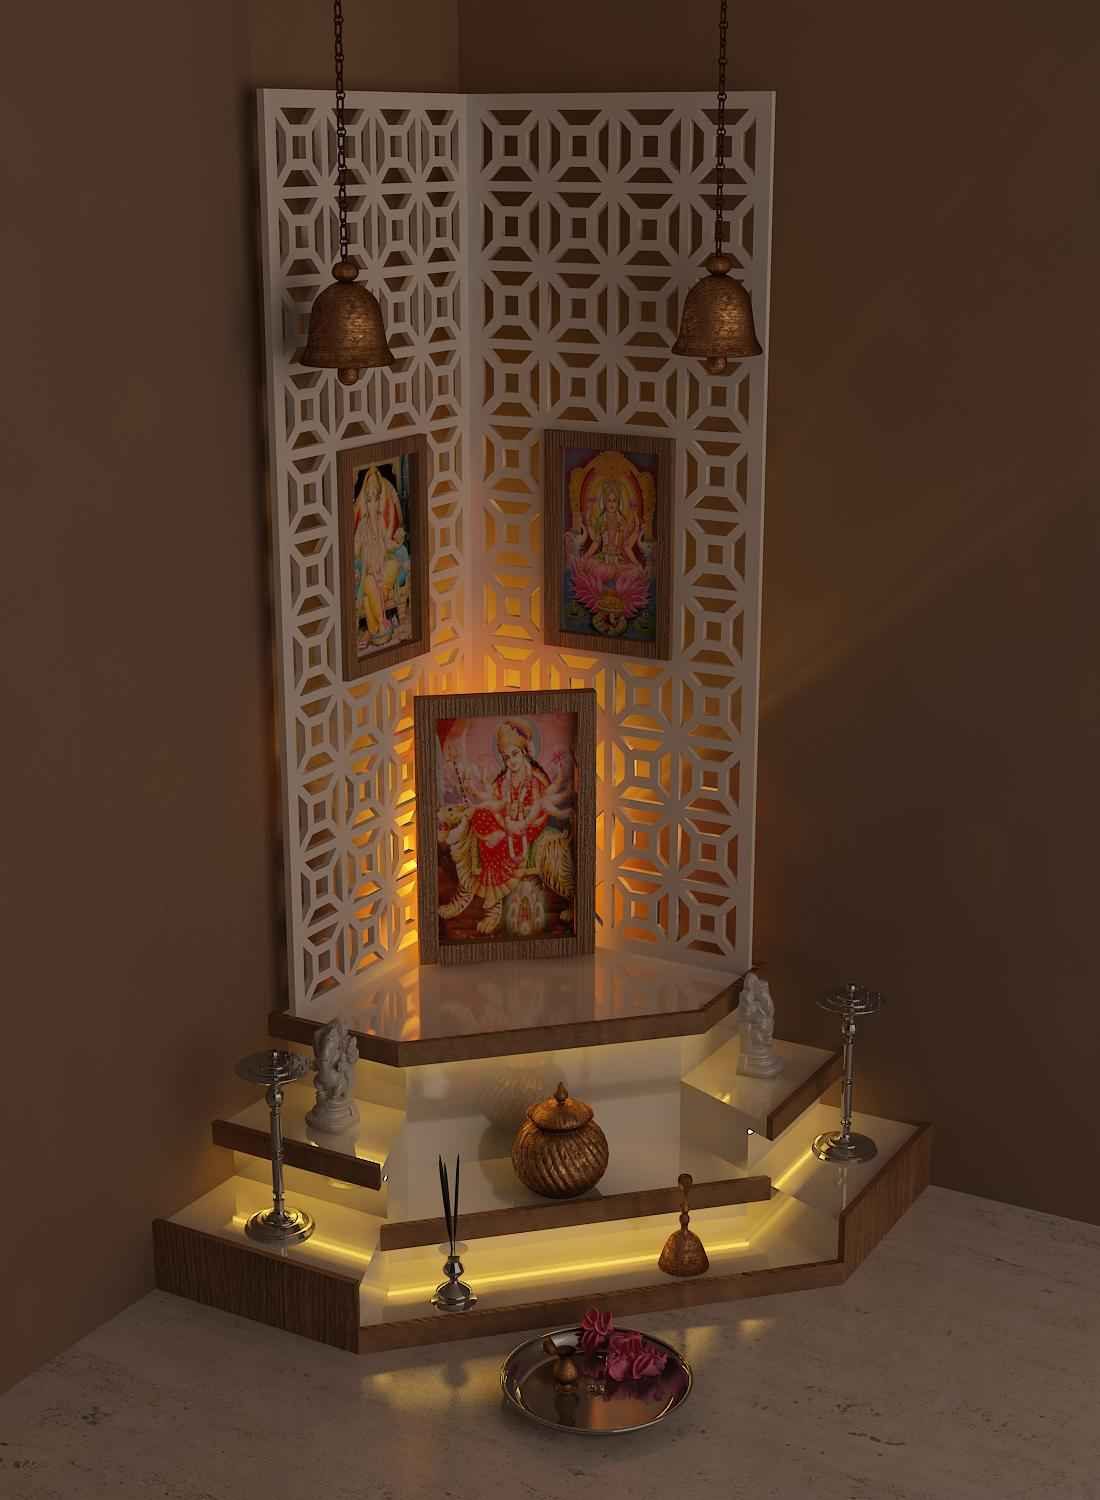 Superior Pooja Mandir Designs For Home Pooja Mandir Interior Design Ideas